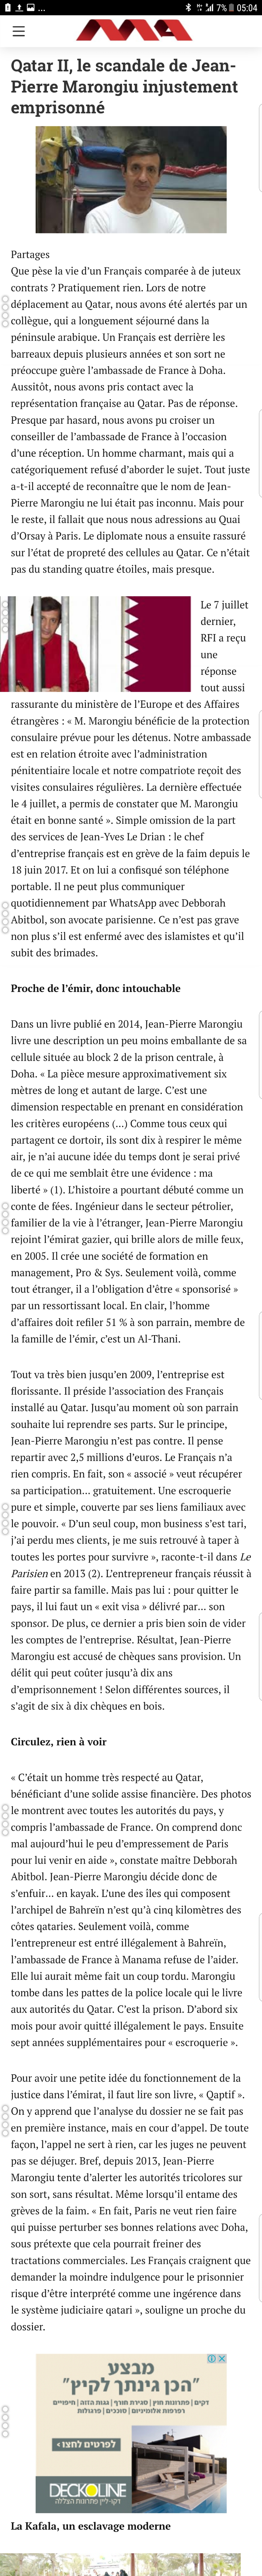 article Mondafrique Affaire Marongiu